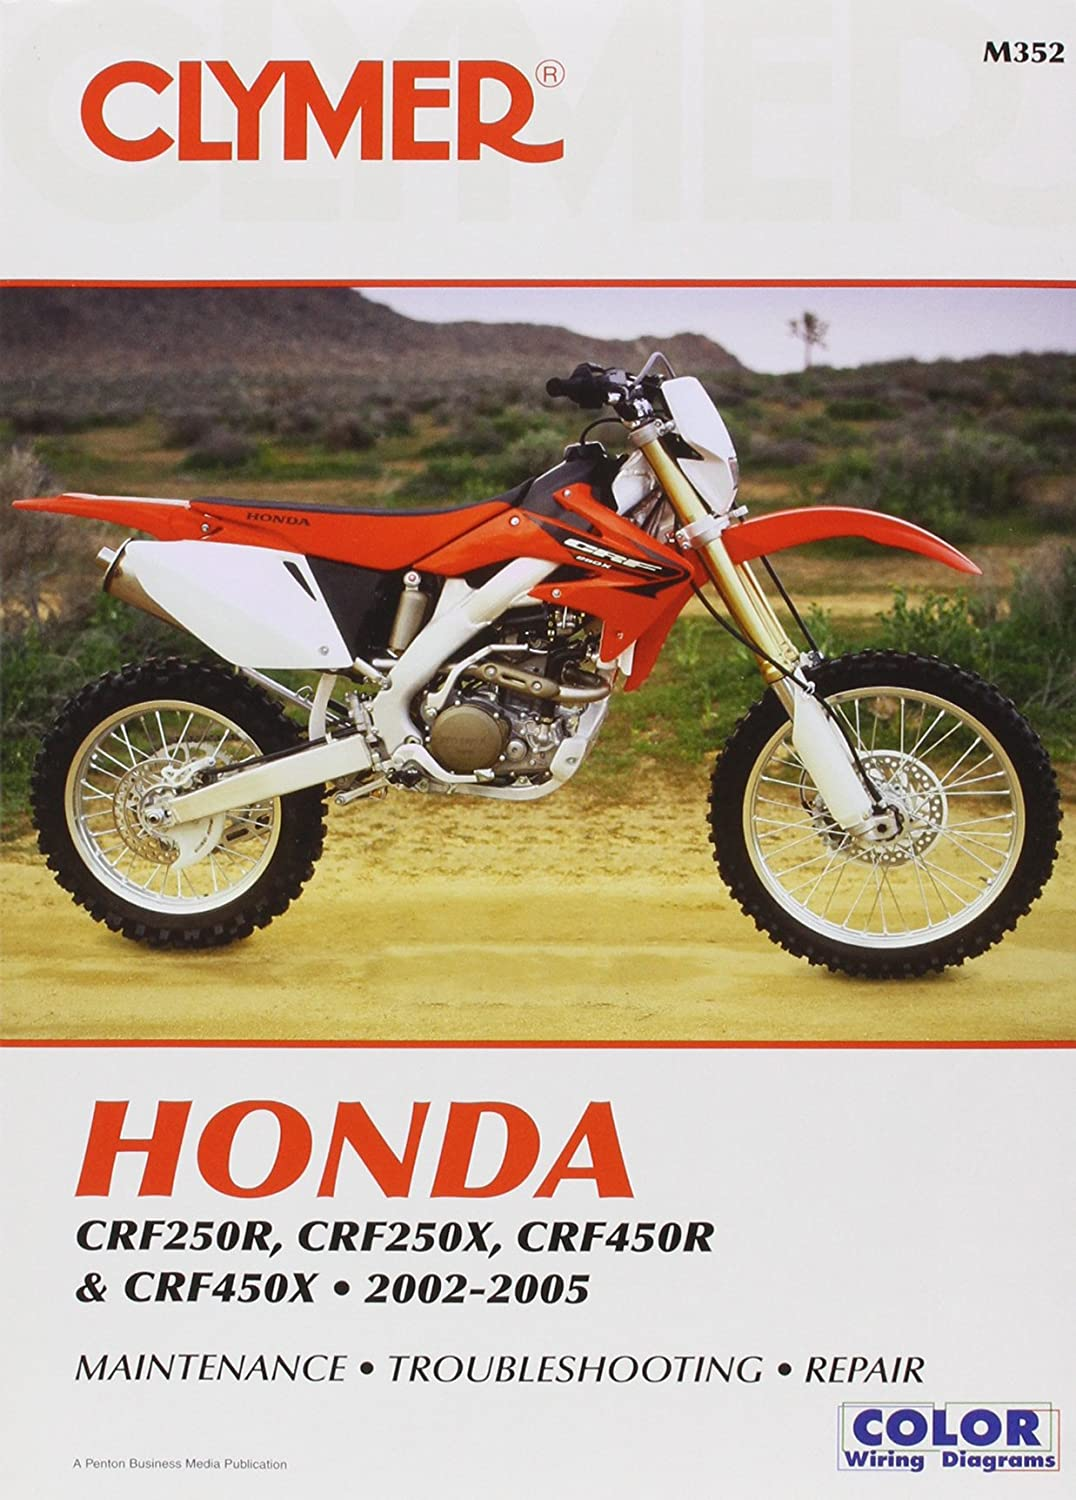 Amazon.com: Clymer Honda CRF250R, CRF250X, CRF450R & CRF450X (2002-2005):  Ron Wright: Automotive